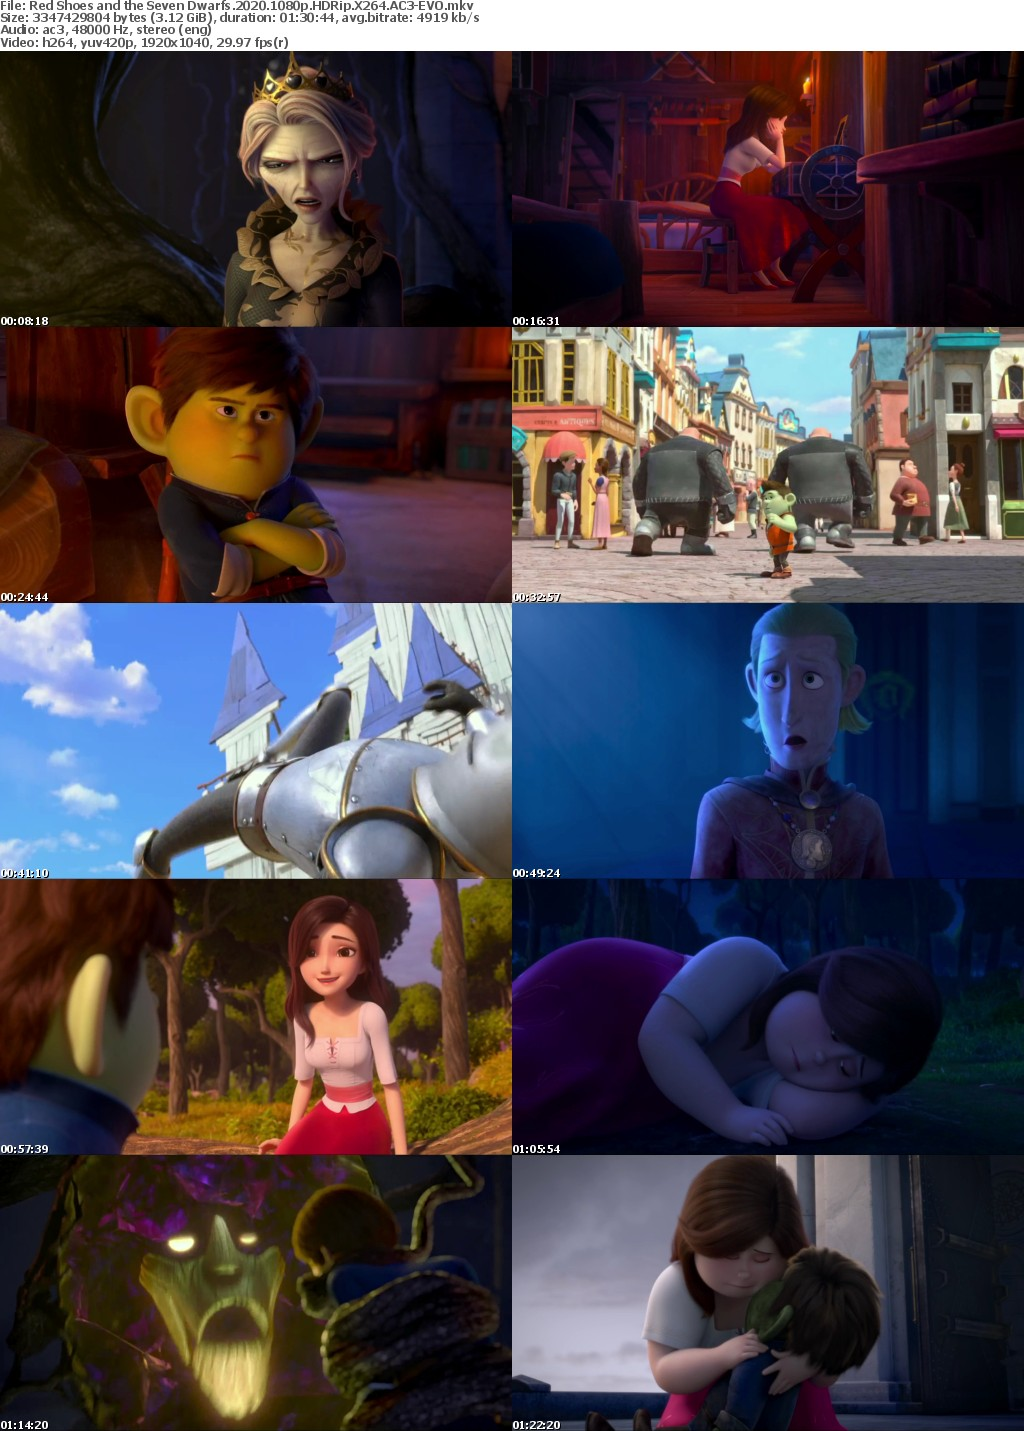 Red Shoes and the Seven Dwarfs (2020) 1080p HDRip X264 AC3-EVO